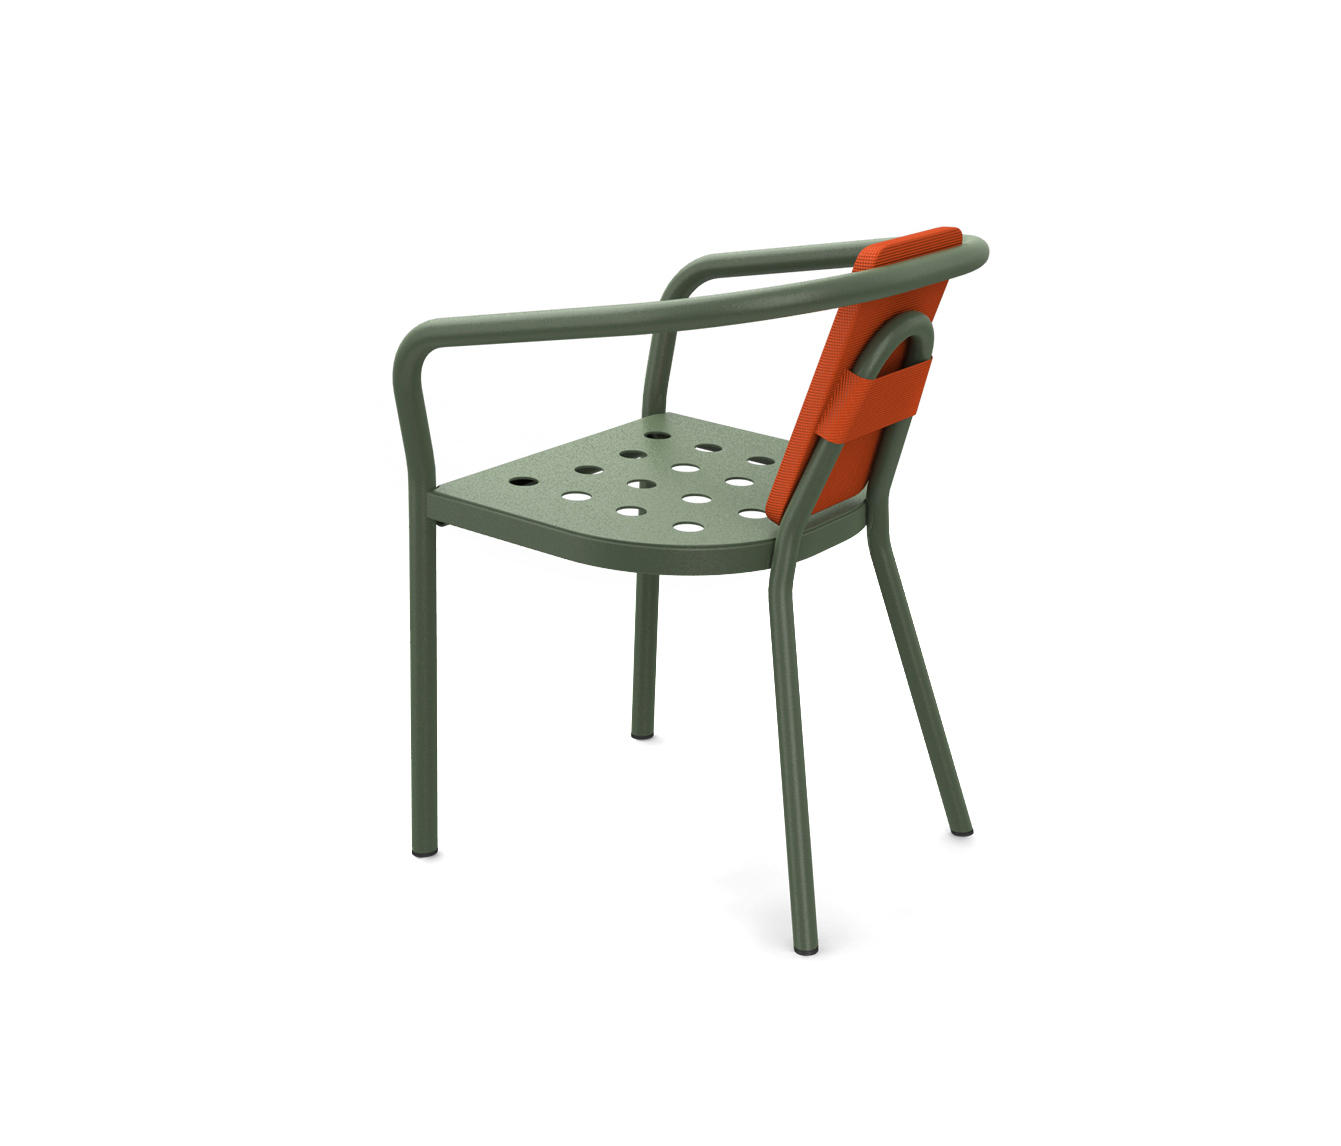 Helm Chairs Helm Chair Chairs From Matière Grise Architonic